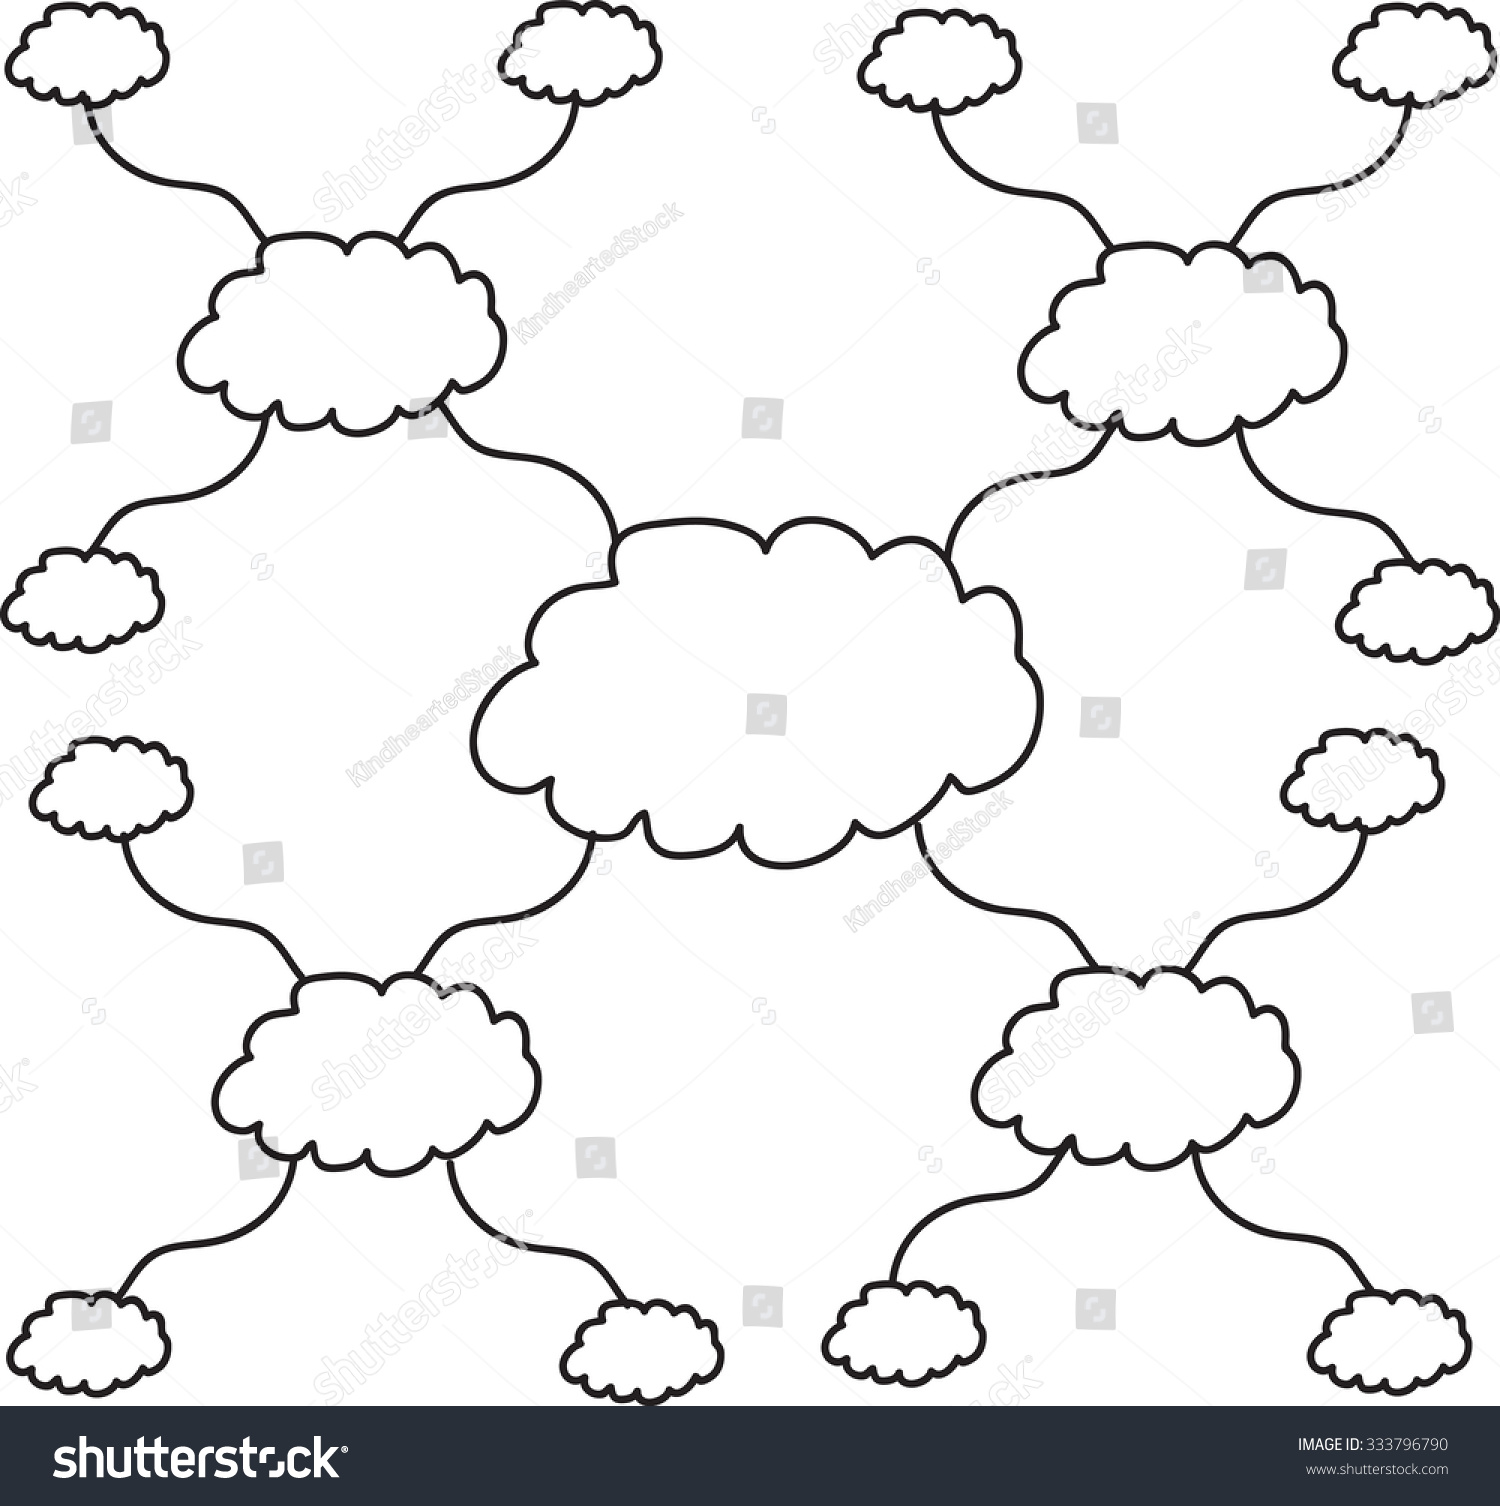 Cloud mind mapping model flow chart stock vector 333796790 cloud mind mapping model flow chart template nvjuhfo Images